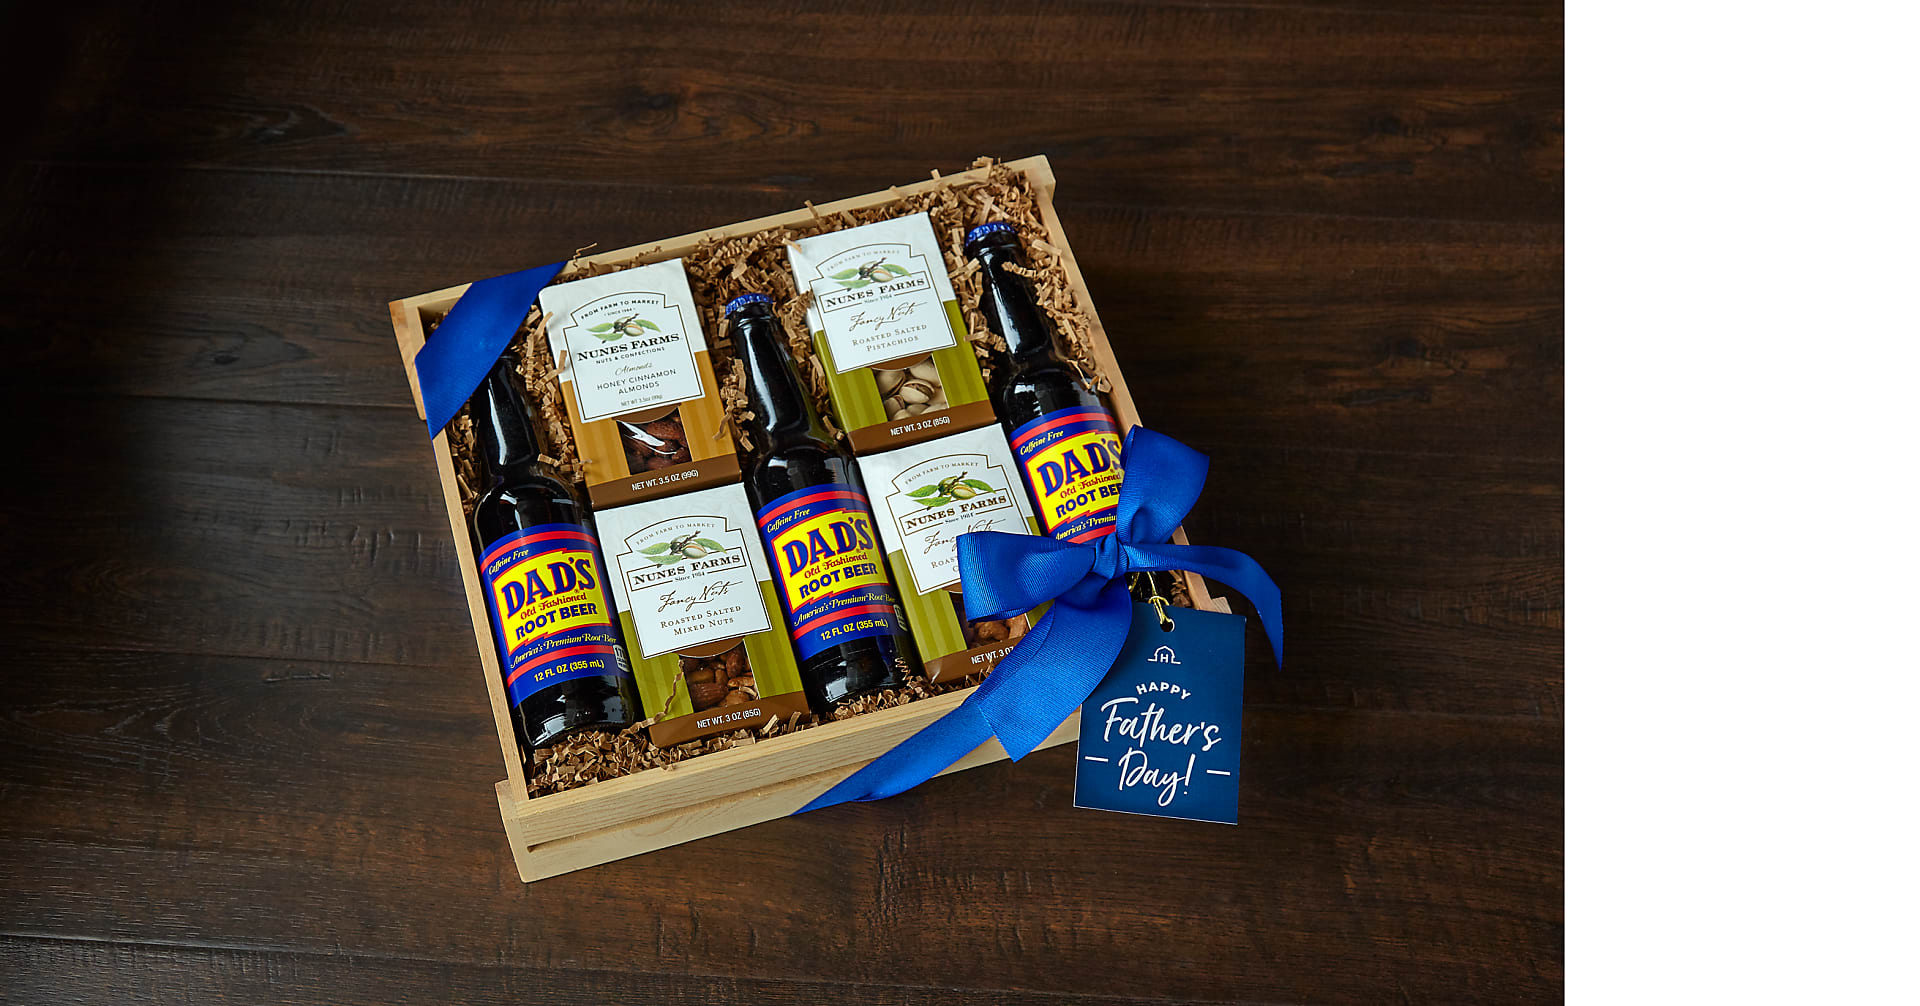 Nuts About Dad Root Beer & Nuts Gift Set - Image 2 Of 2